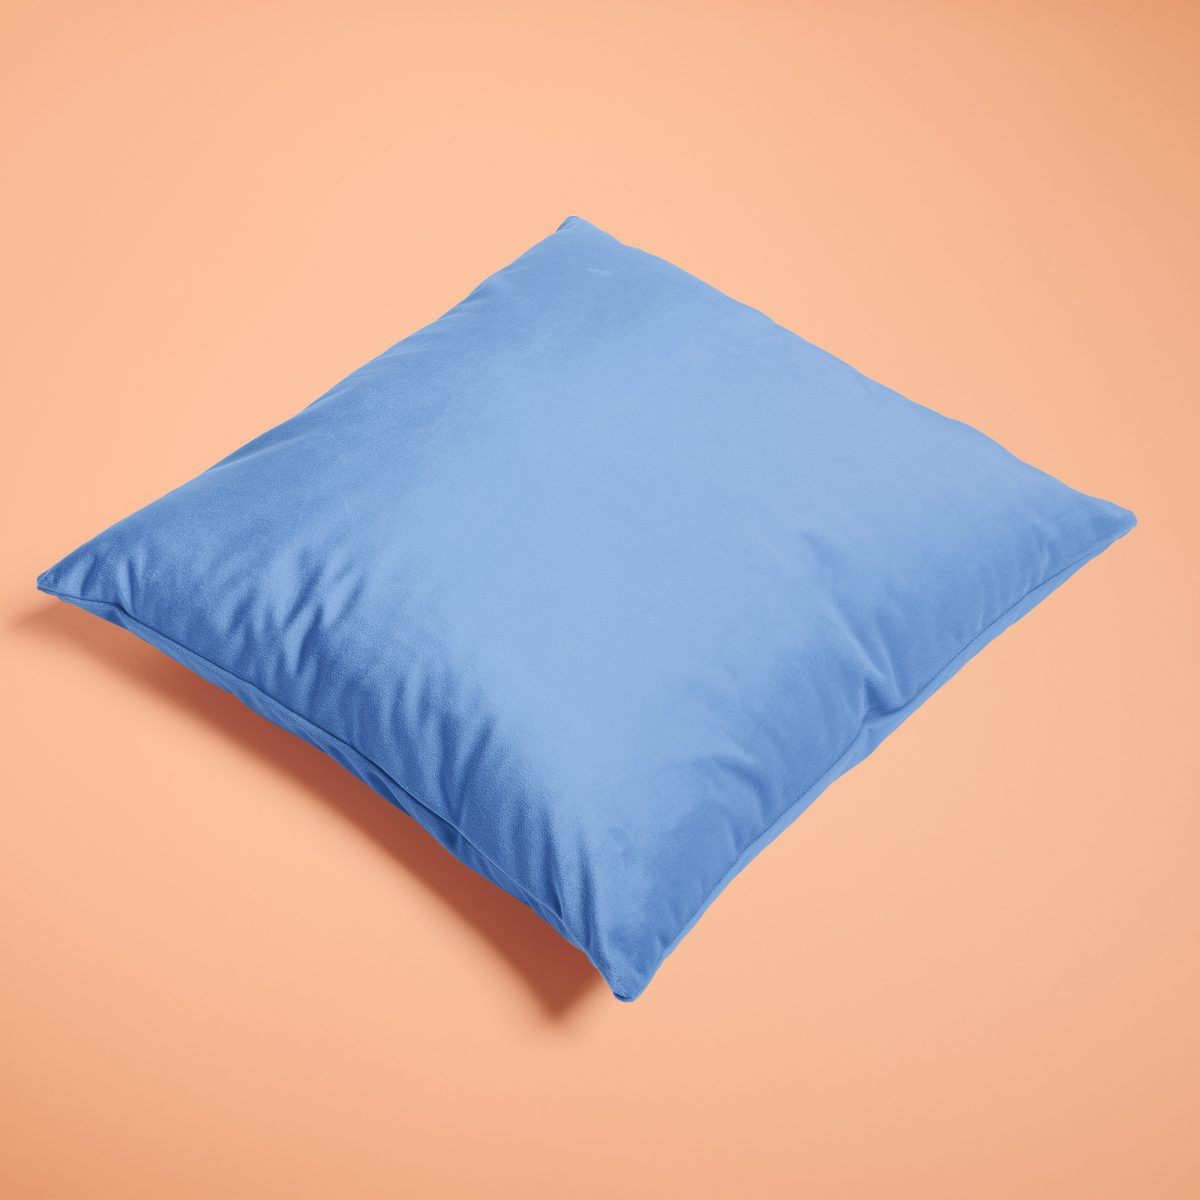 baby-blue-covers-of-the-rainbow-2